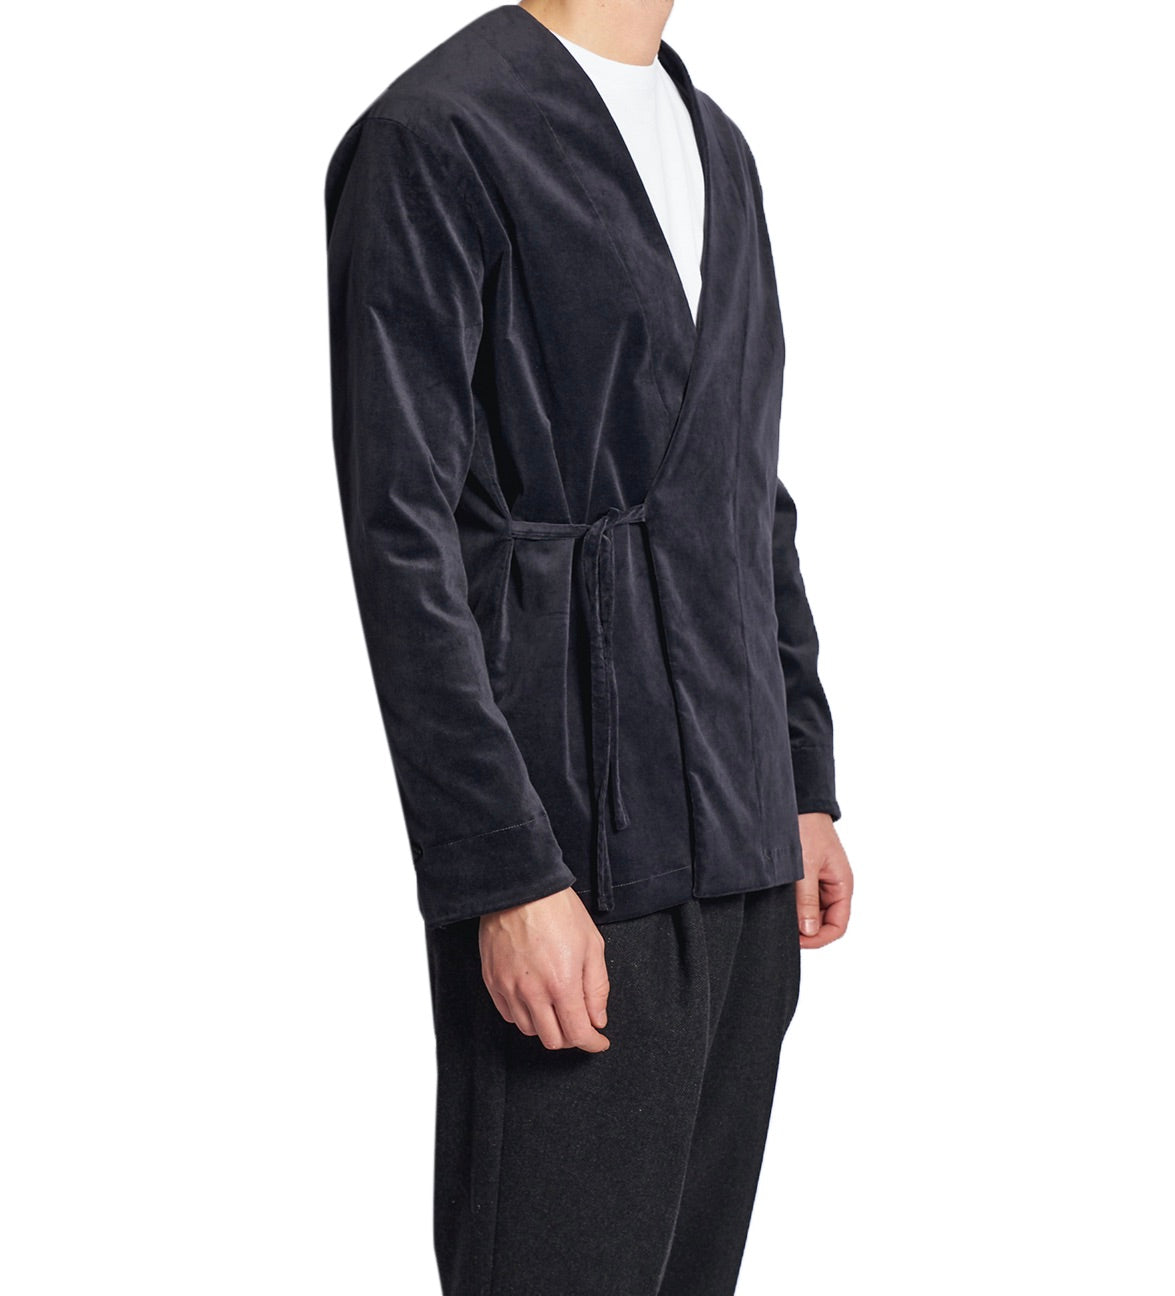 MEN'S KIMO-SHIRT VELVET DARKBLUE